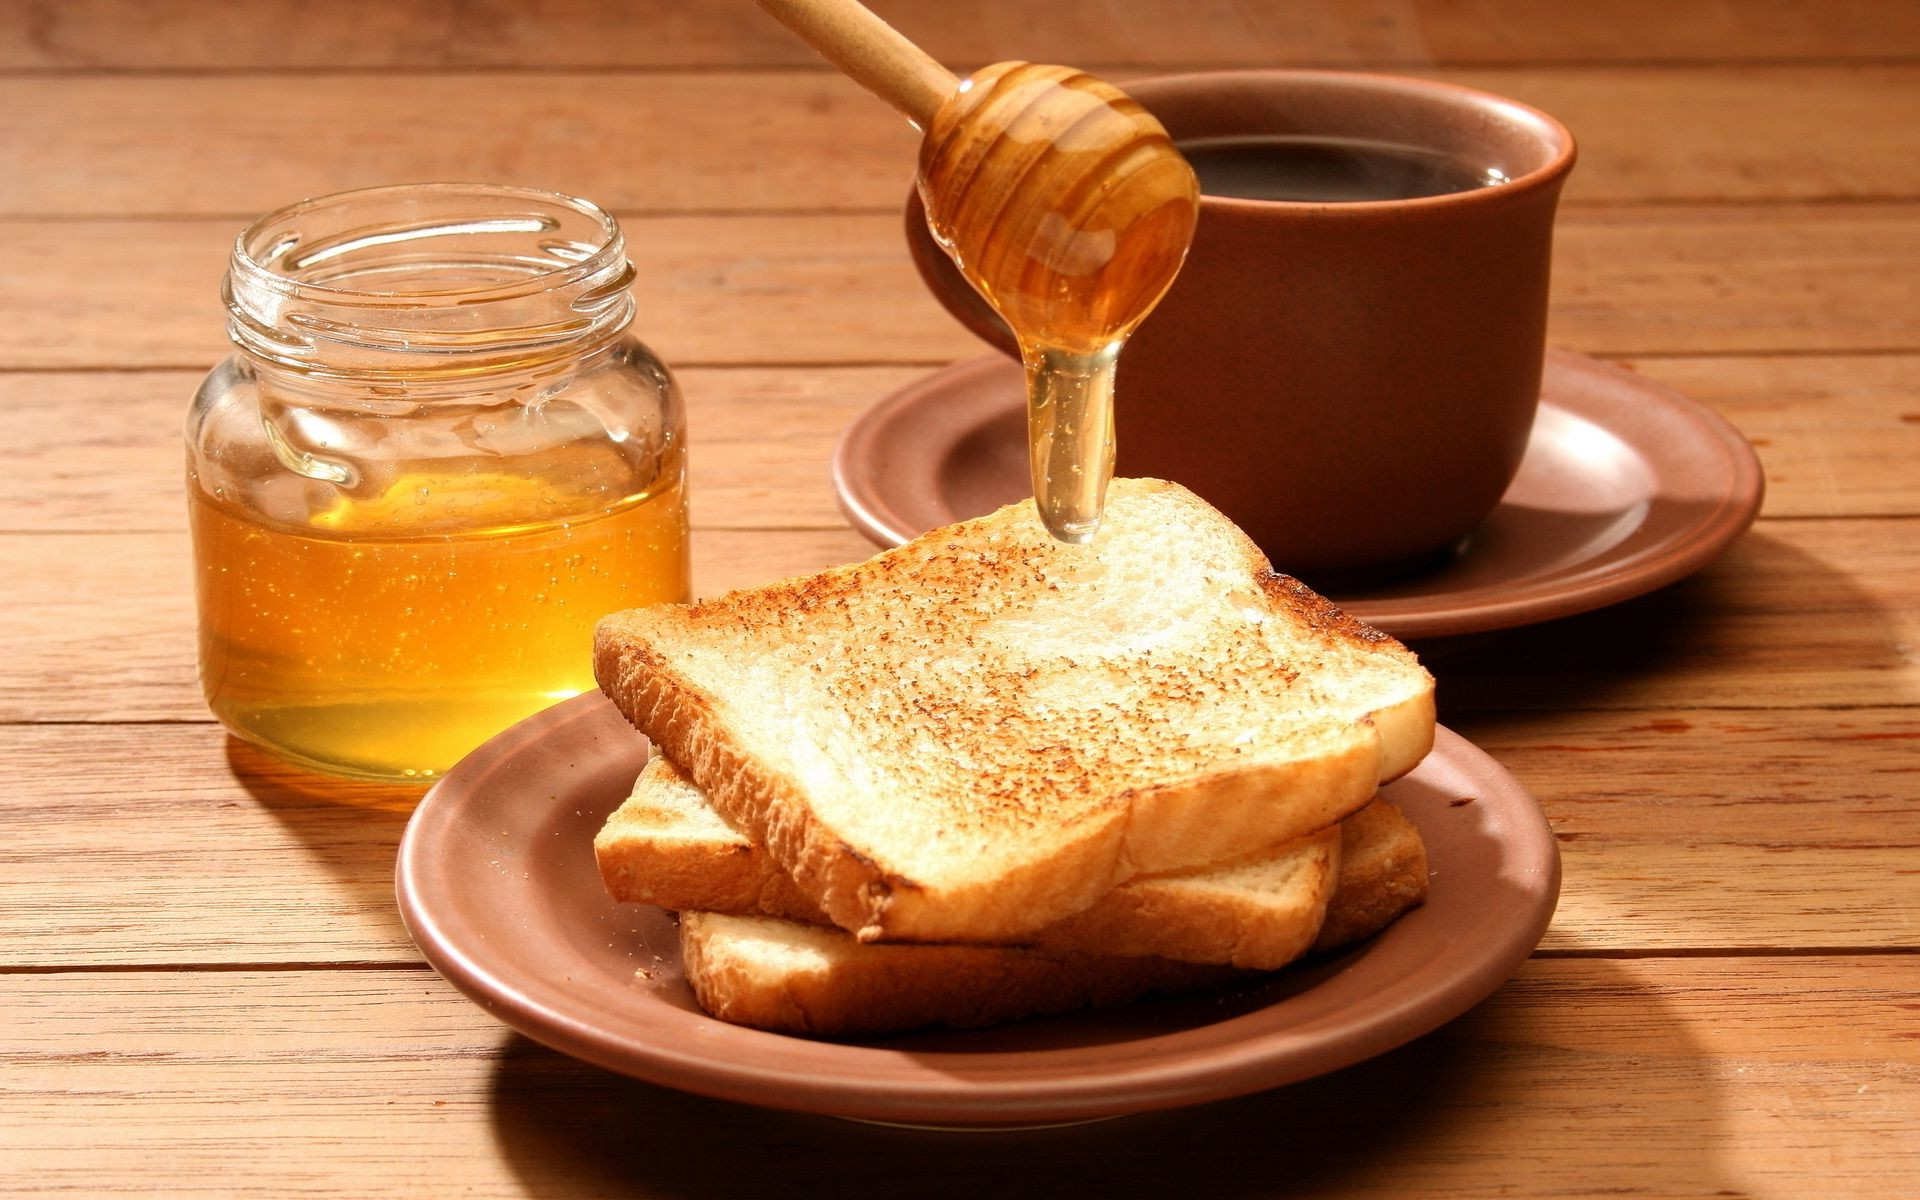 breakfast honey food wood spoon sweet grow bread delicious jar wooden table nutrition jam healthy homemade glass toast dawn